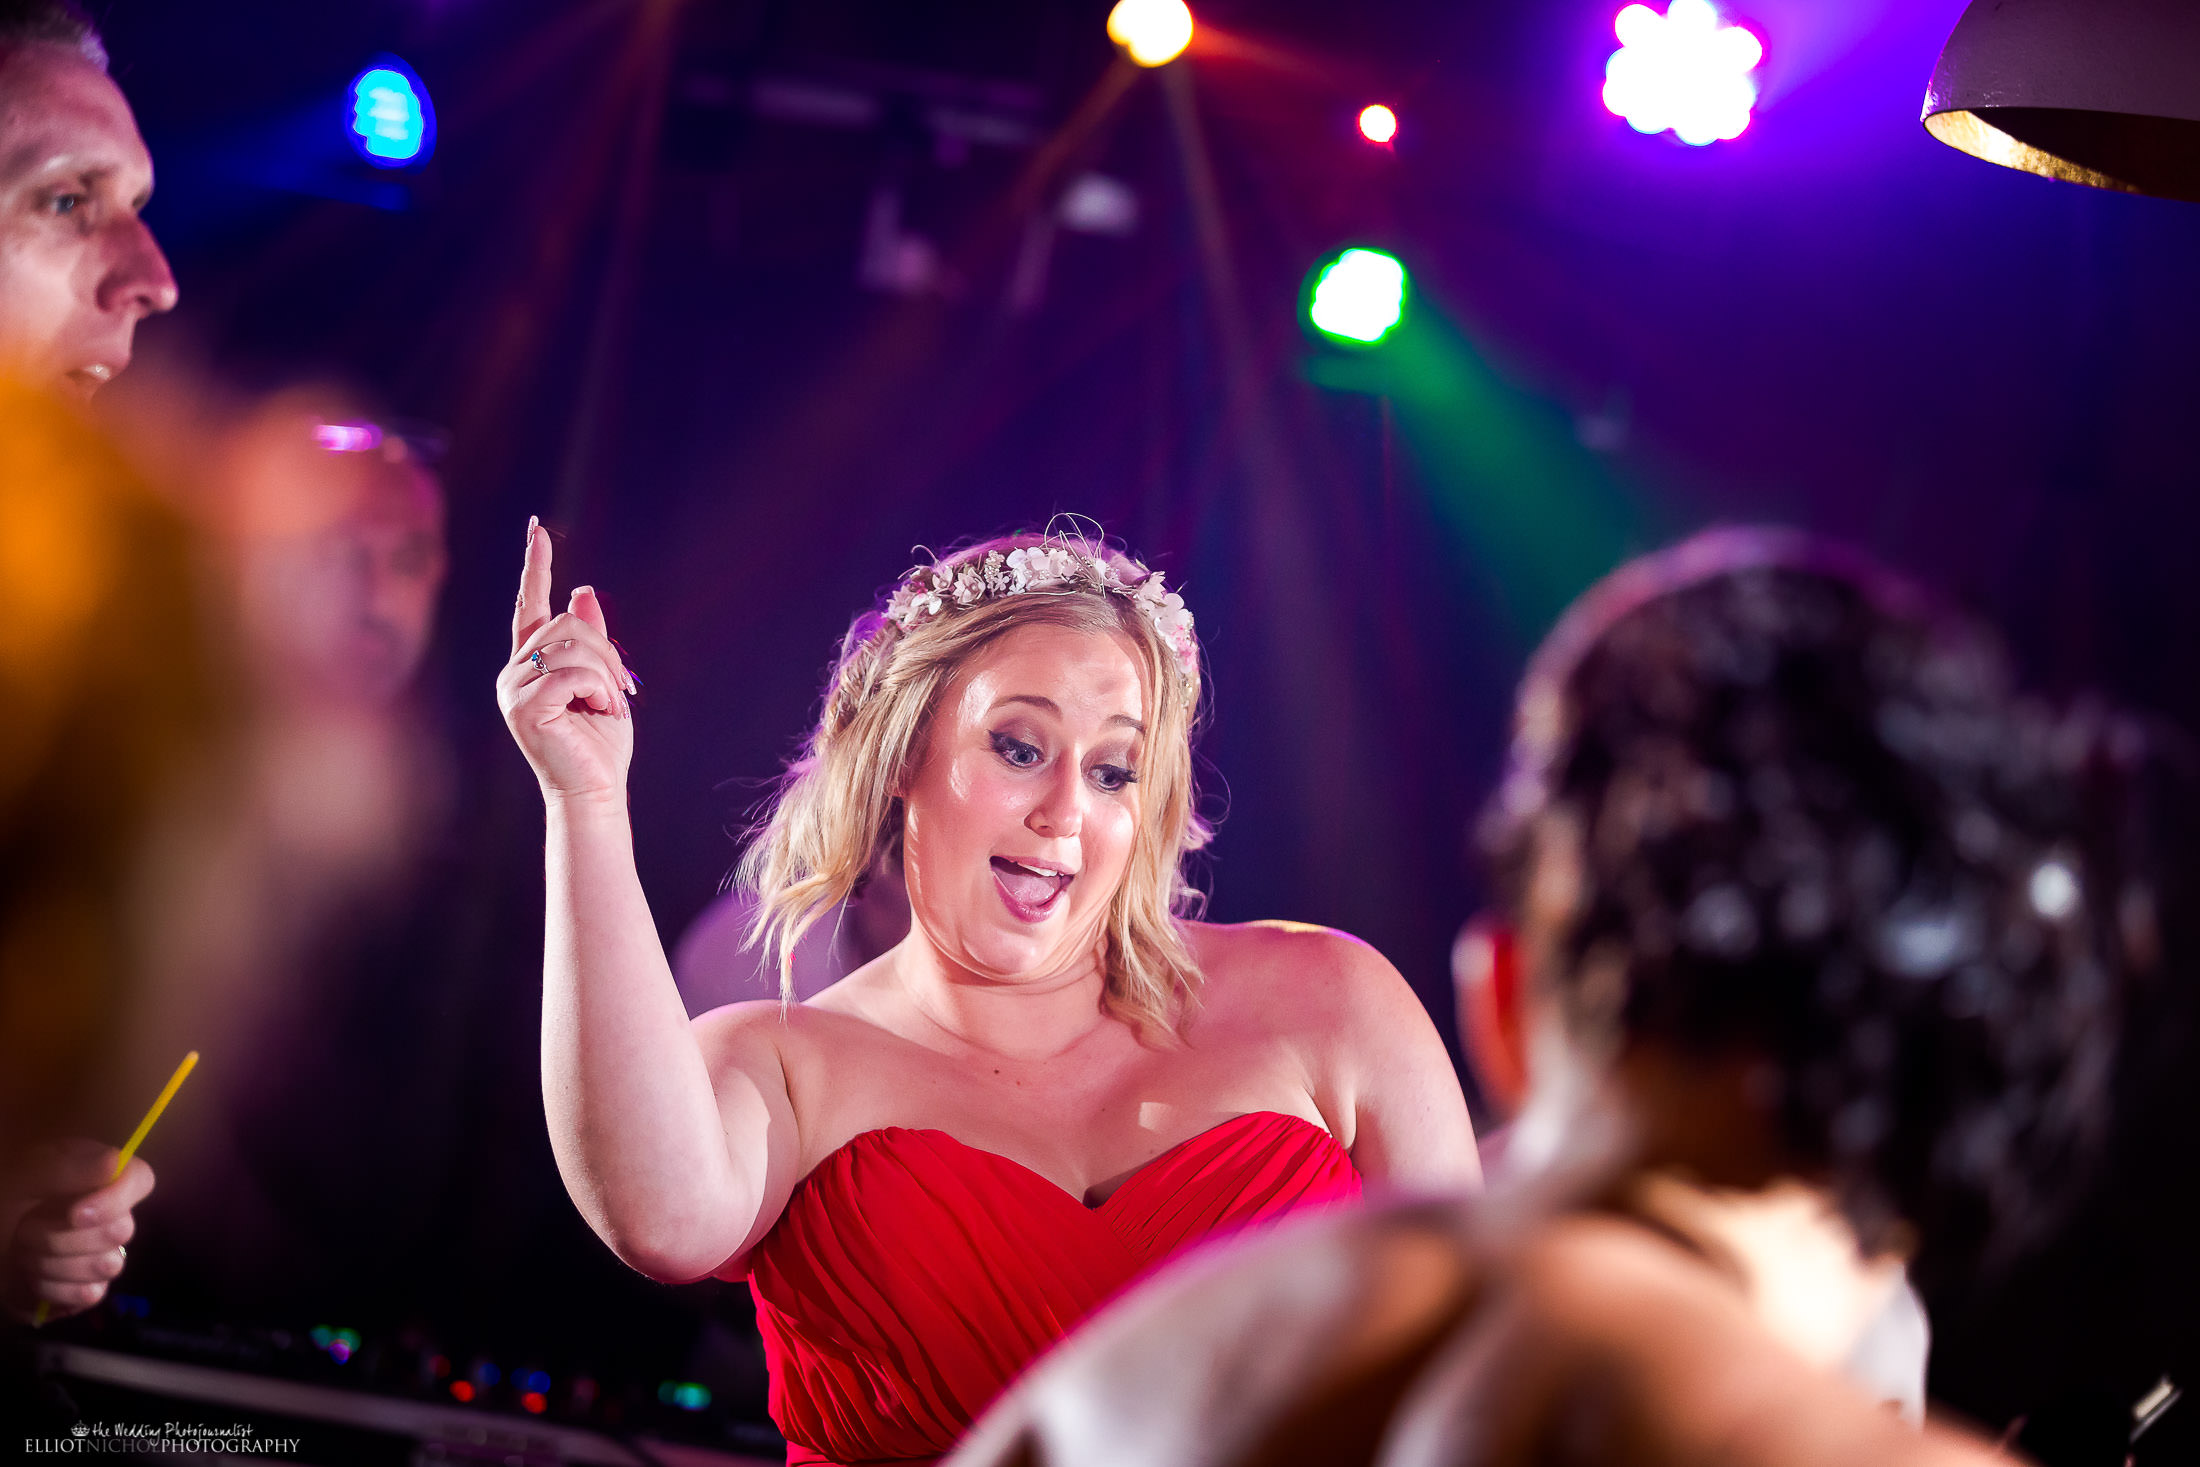 Bridesmaid partying hard on the dance floor. Photo by North East wedding photojournalist Elliot Nichol.